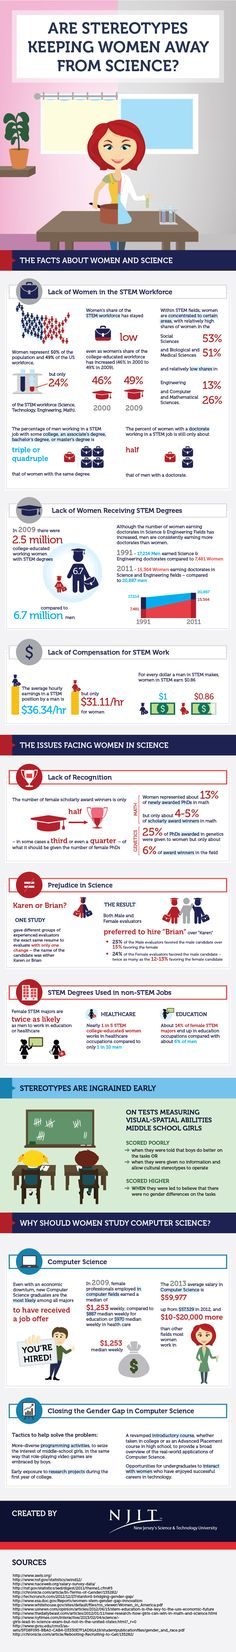 The Facts About Women and STEM - Getting Smart by Guest Author - girls in STEM, infographic, STEM, STEMchat